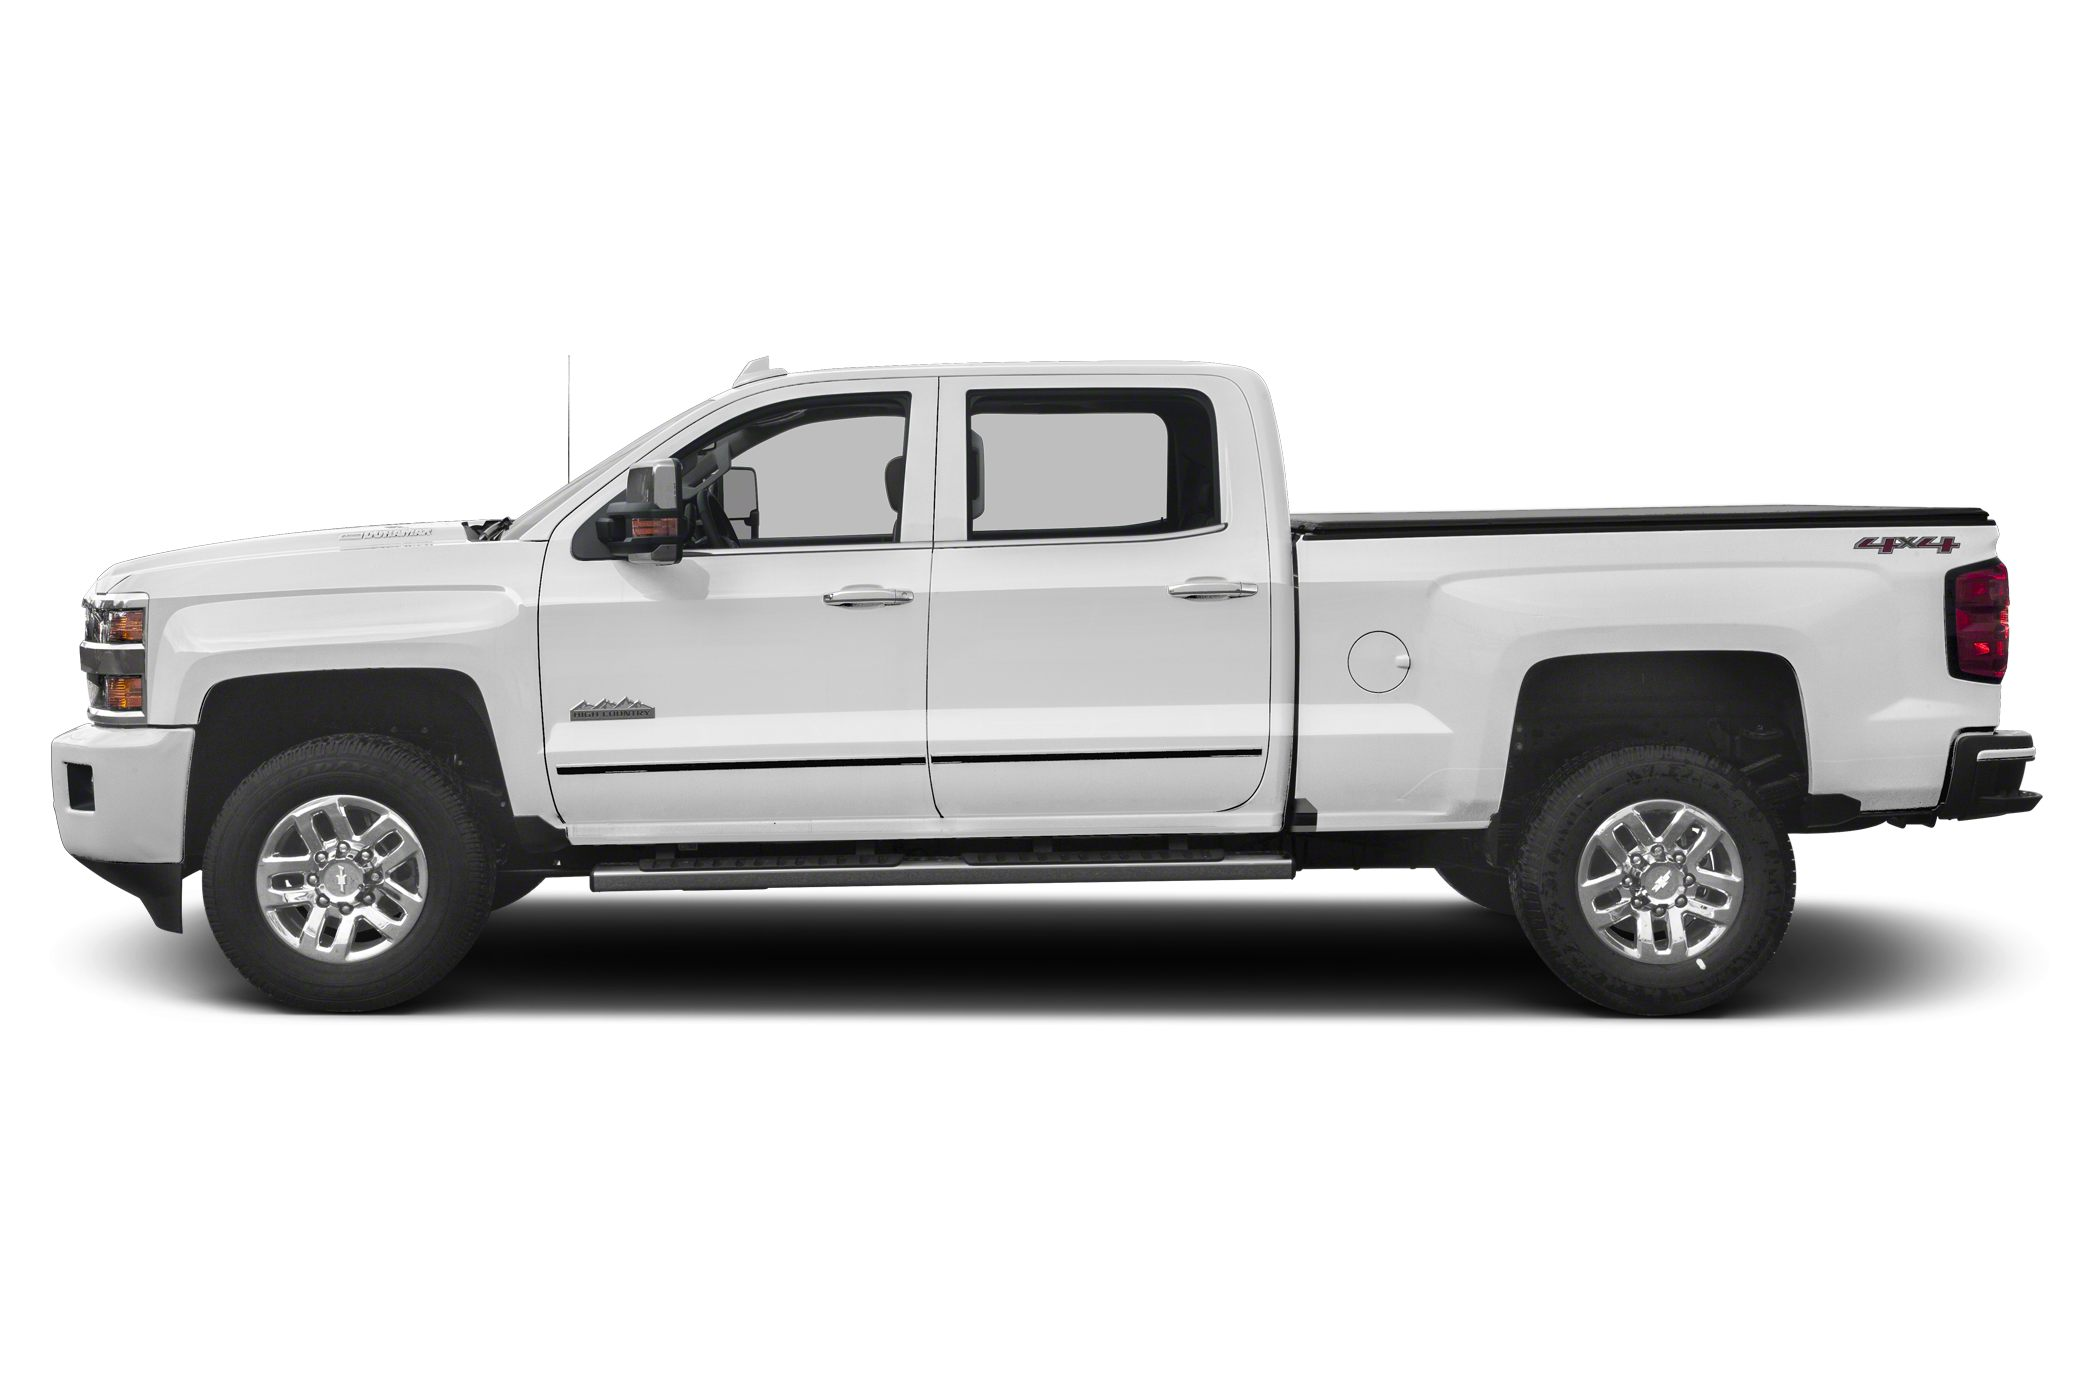 2017 chevrolet silverado 3500hd high country cars and vehicles east providence ri. Black Bedroom Furniture Sets. Home Design Ideas